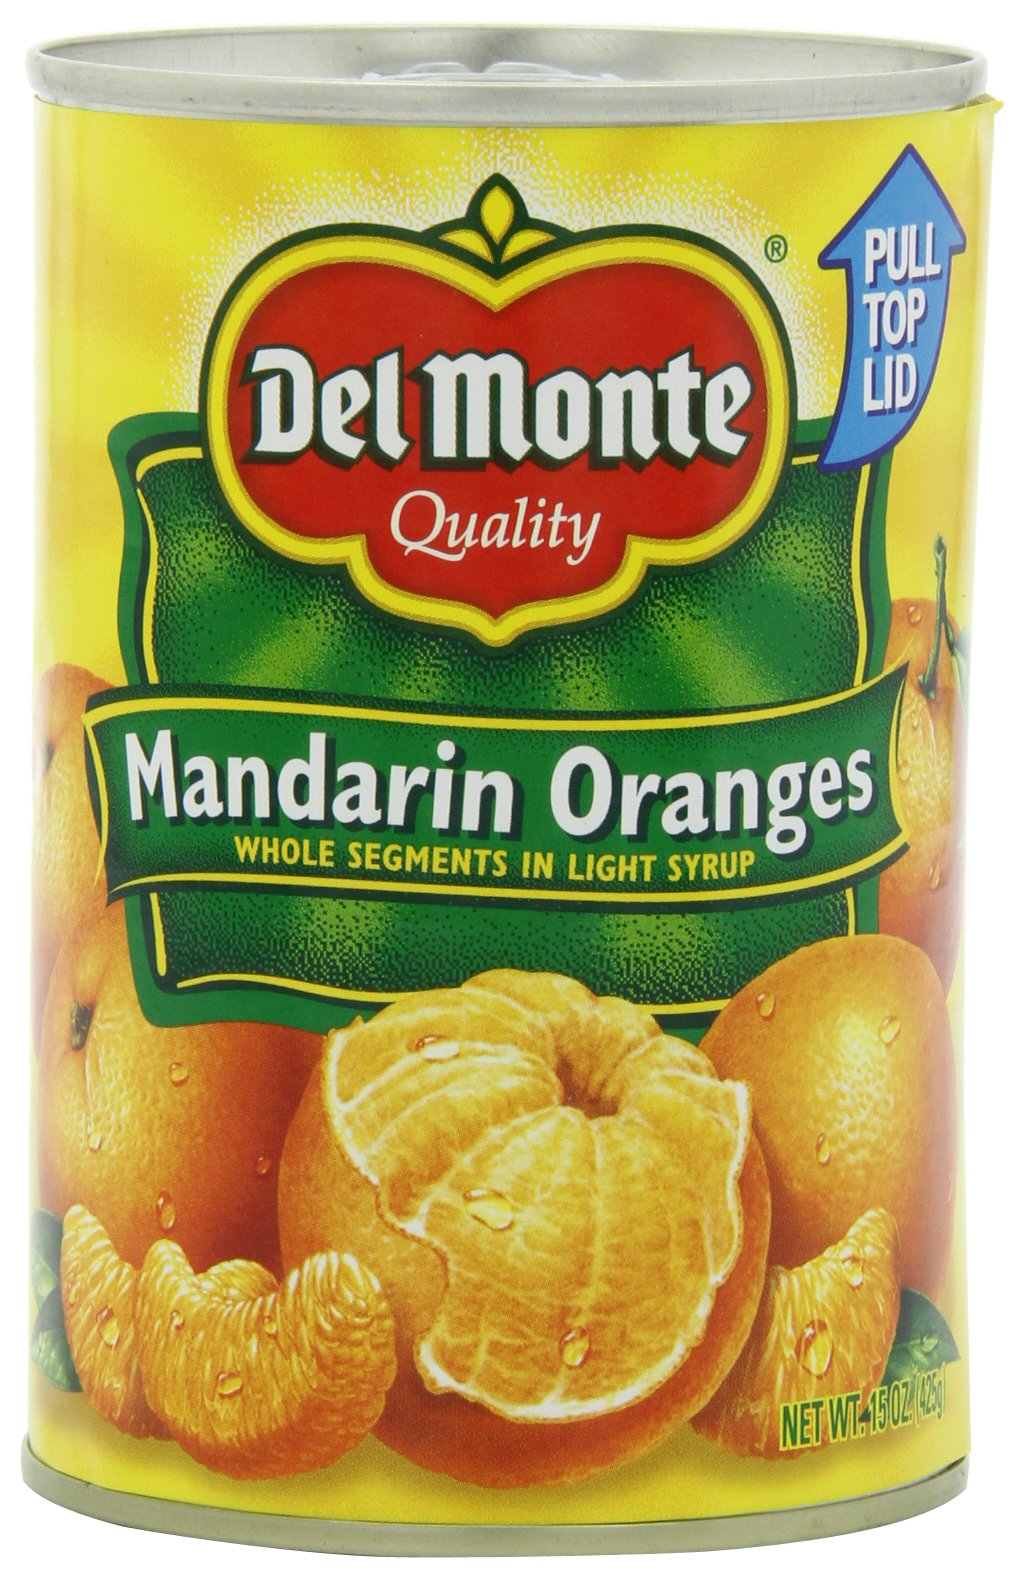 Del Monte Mandarin Oranges Whole Segments in Light Syrup, 15-Ounce (Pack of 8)